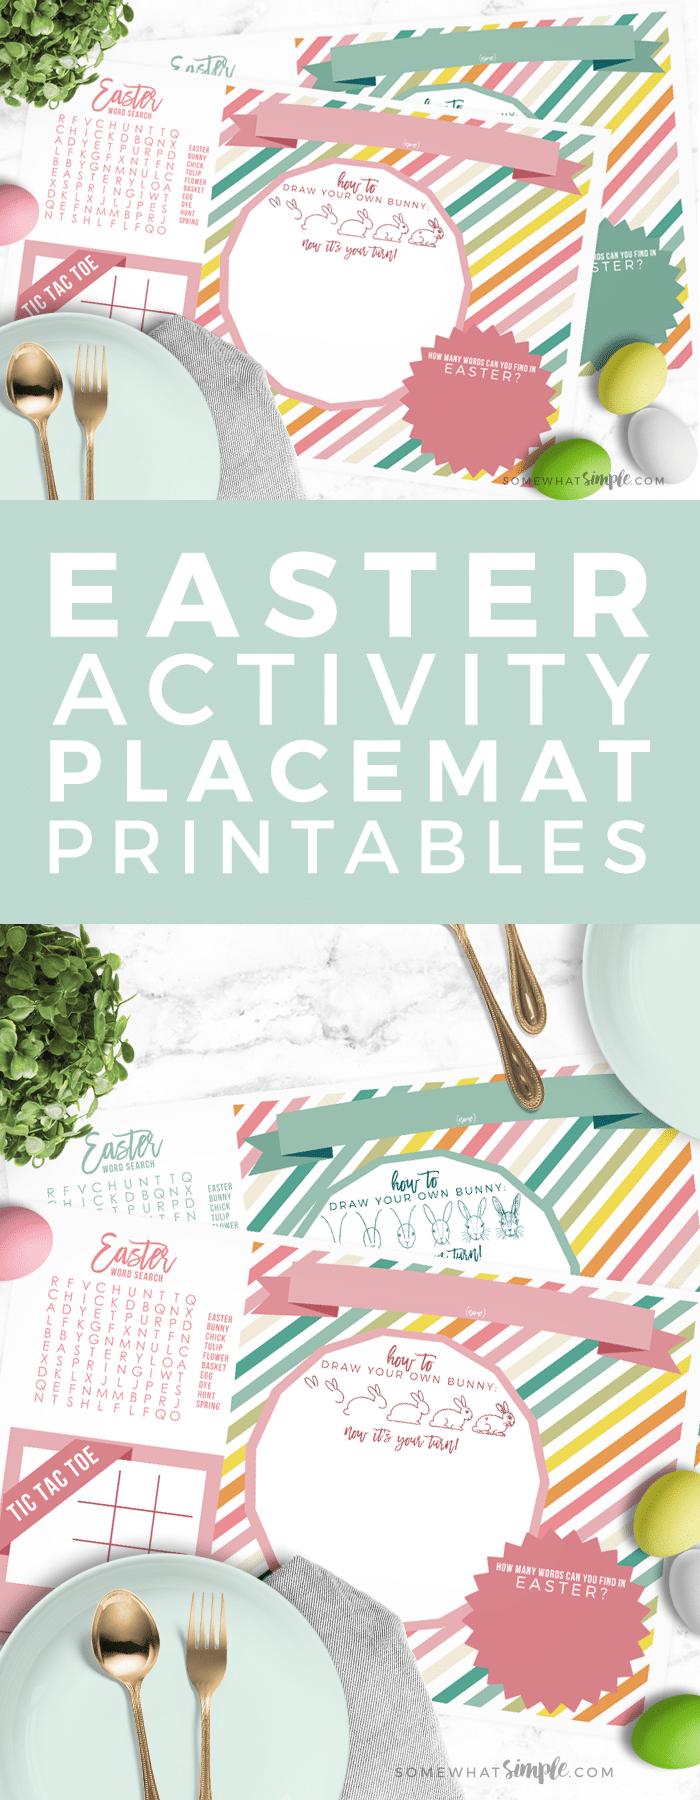 Add some fun to your Easter celebrations with this cute Easter placemat printable! via @somewhatsimple